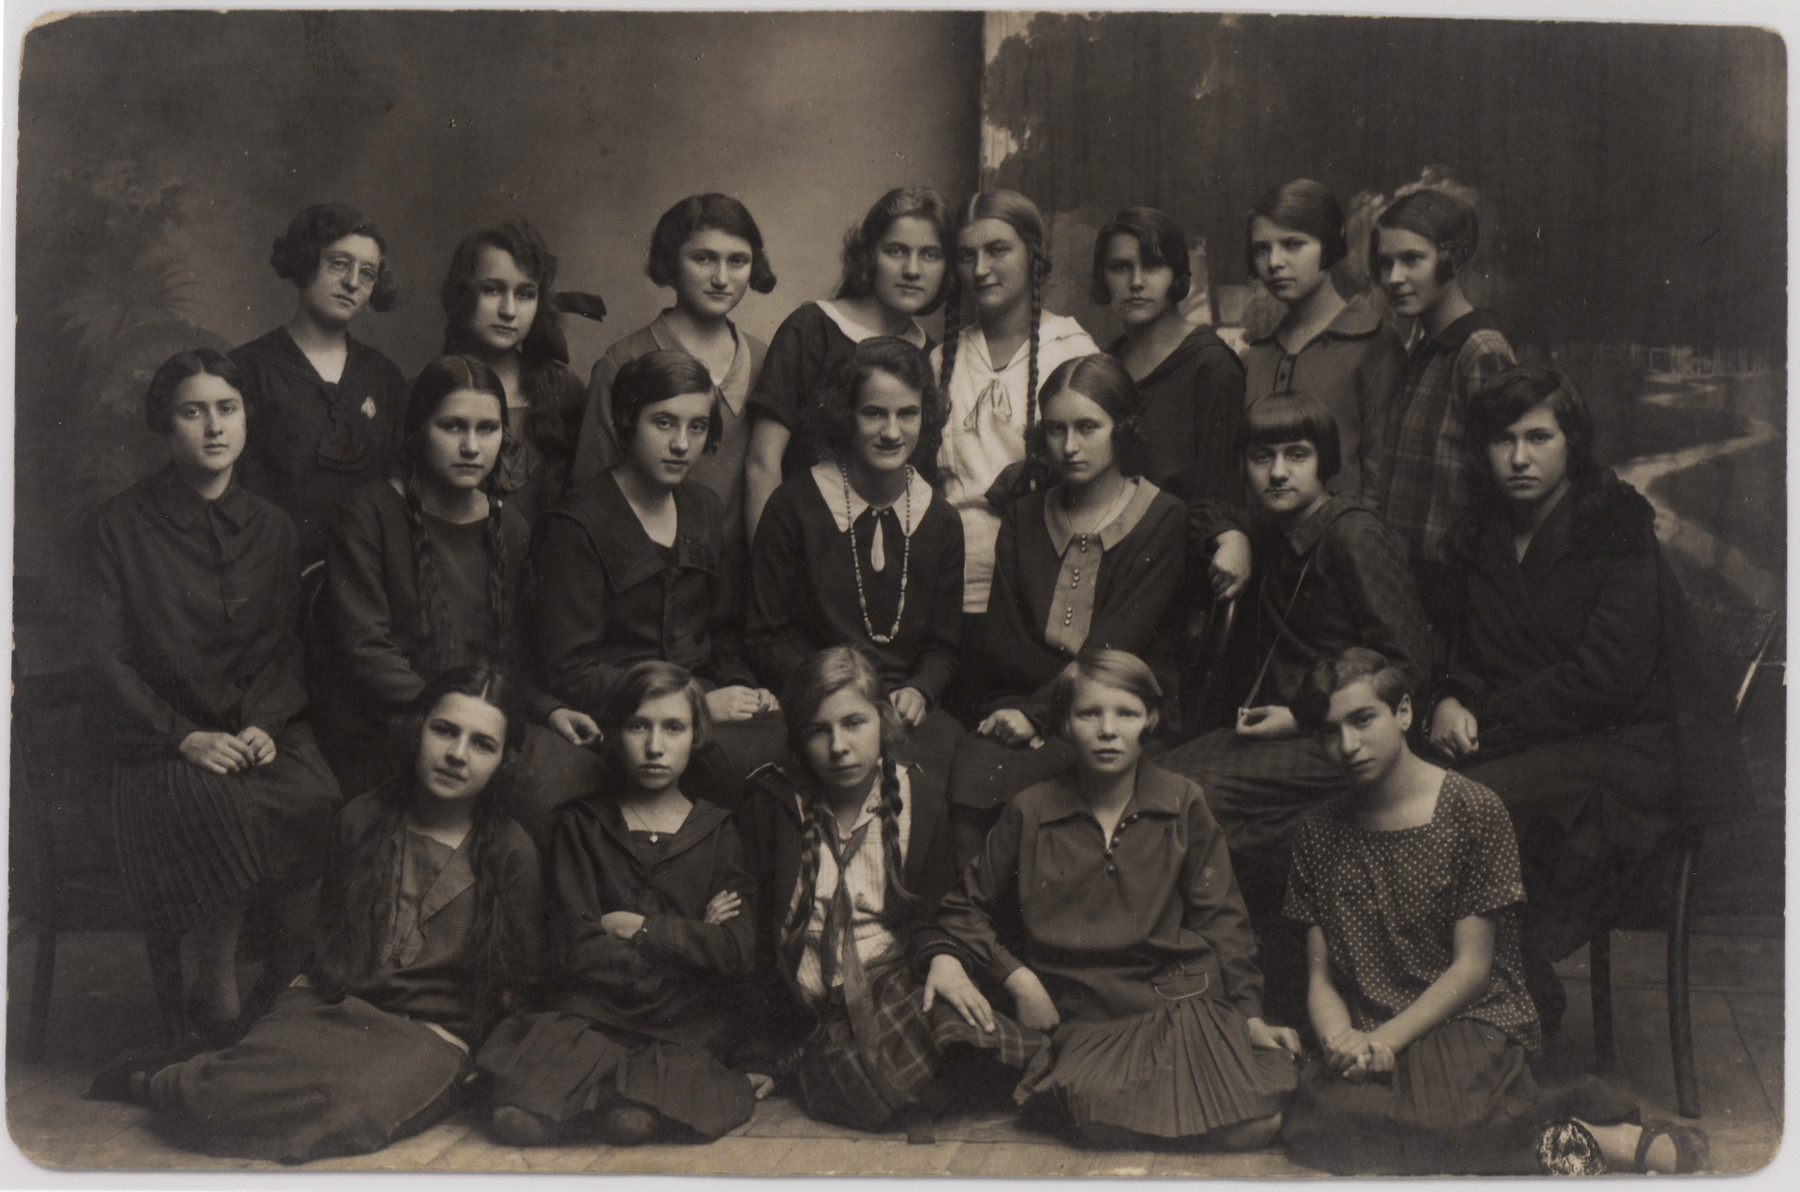 Portrait of a group of young women in a gymnasium class in or near Sanok.  Helena Amkraut is pictured in the middle row on the right.